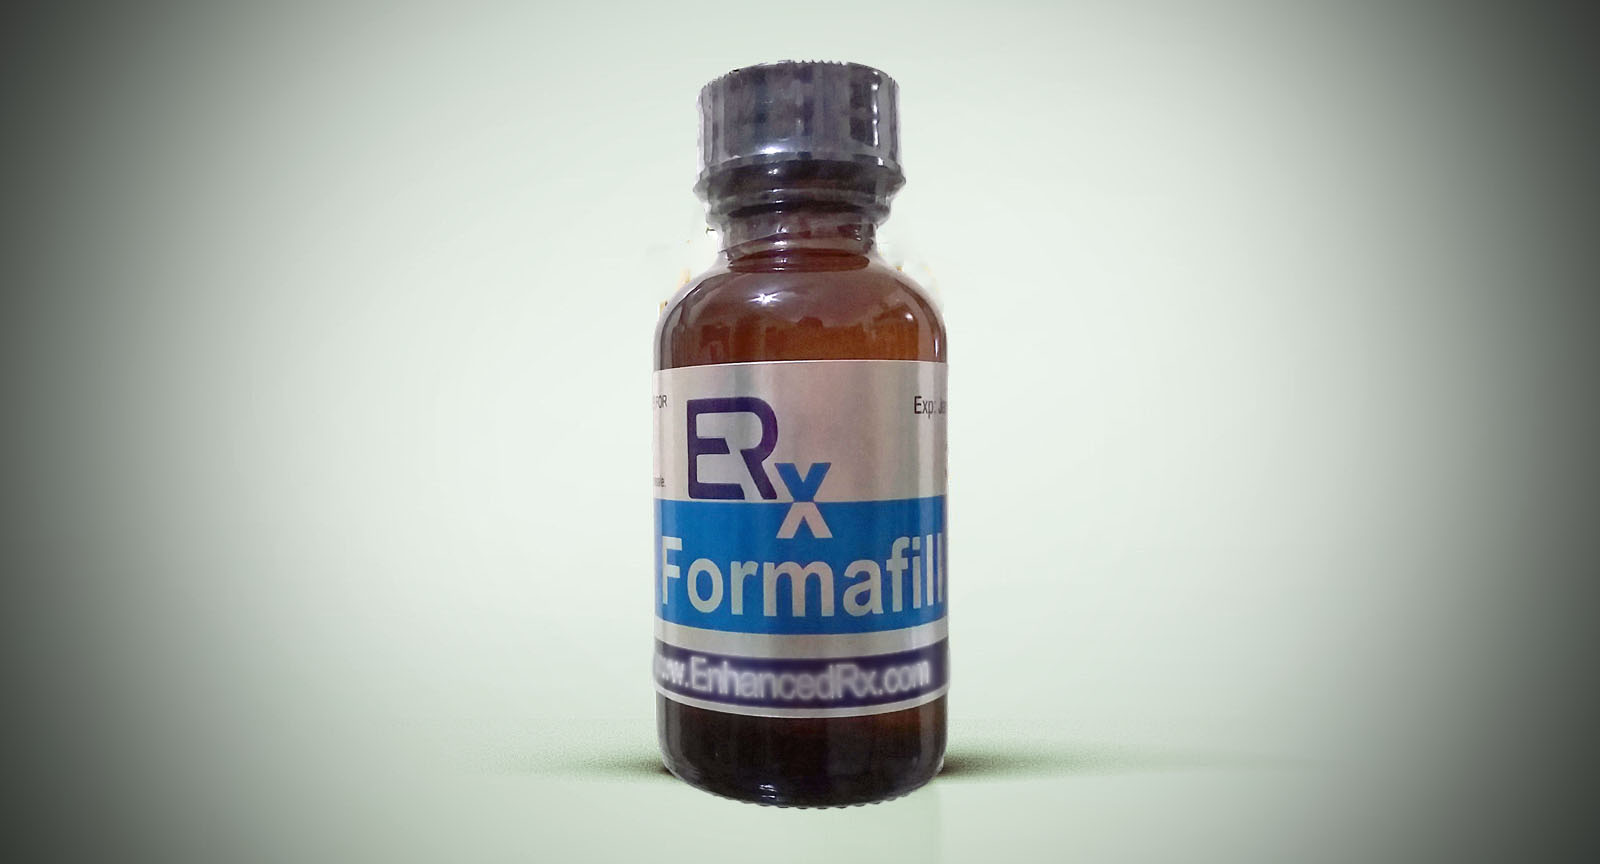 Formafill for chest muscle building, build muscles, arm muscle